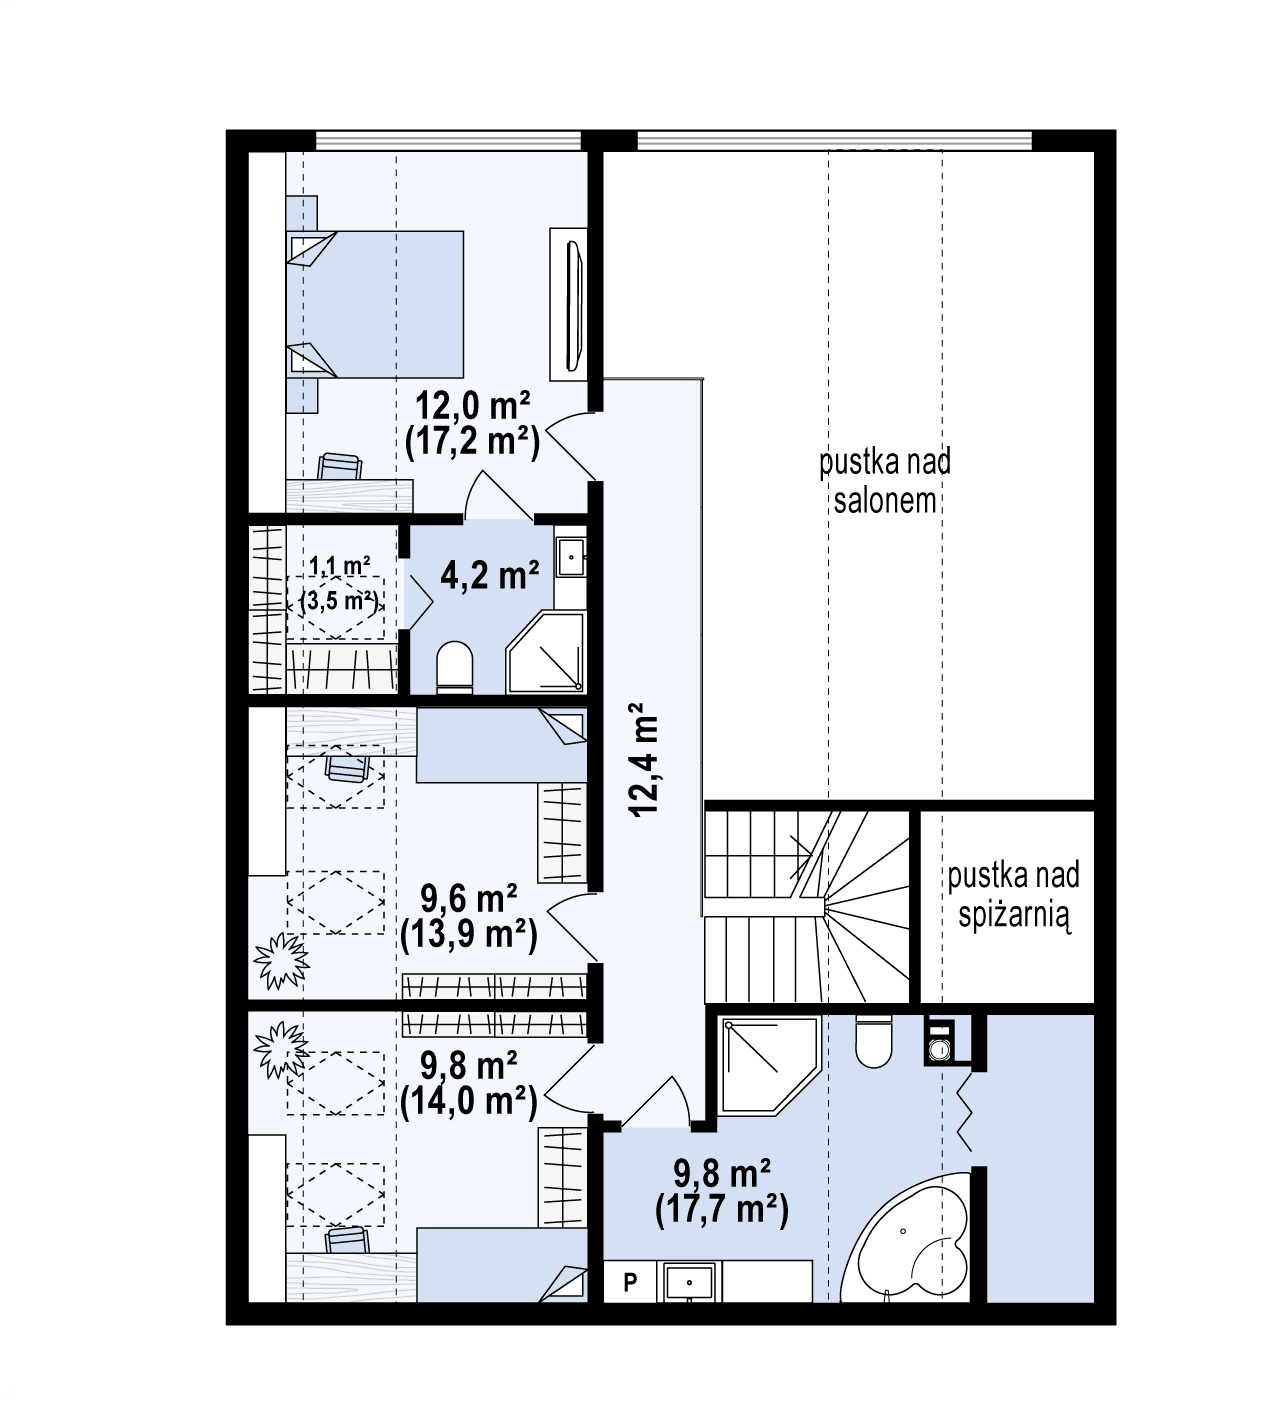 The attic / floor plan